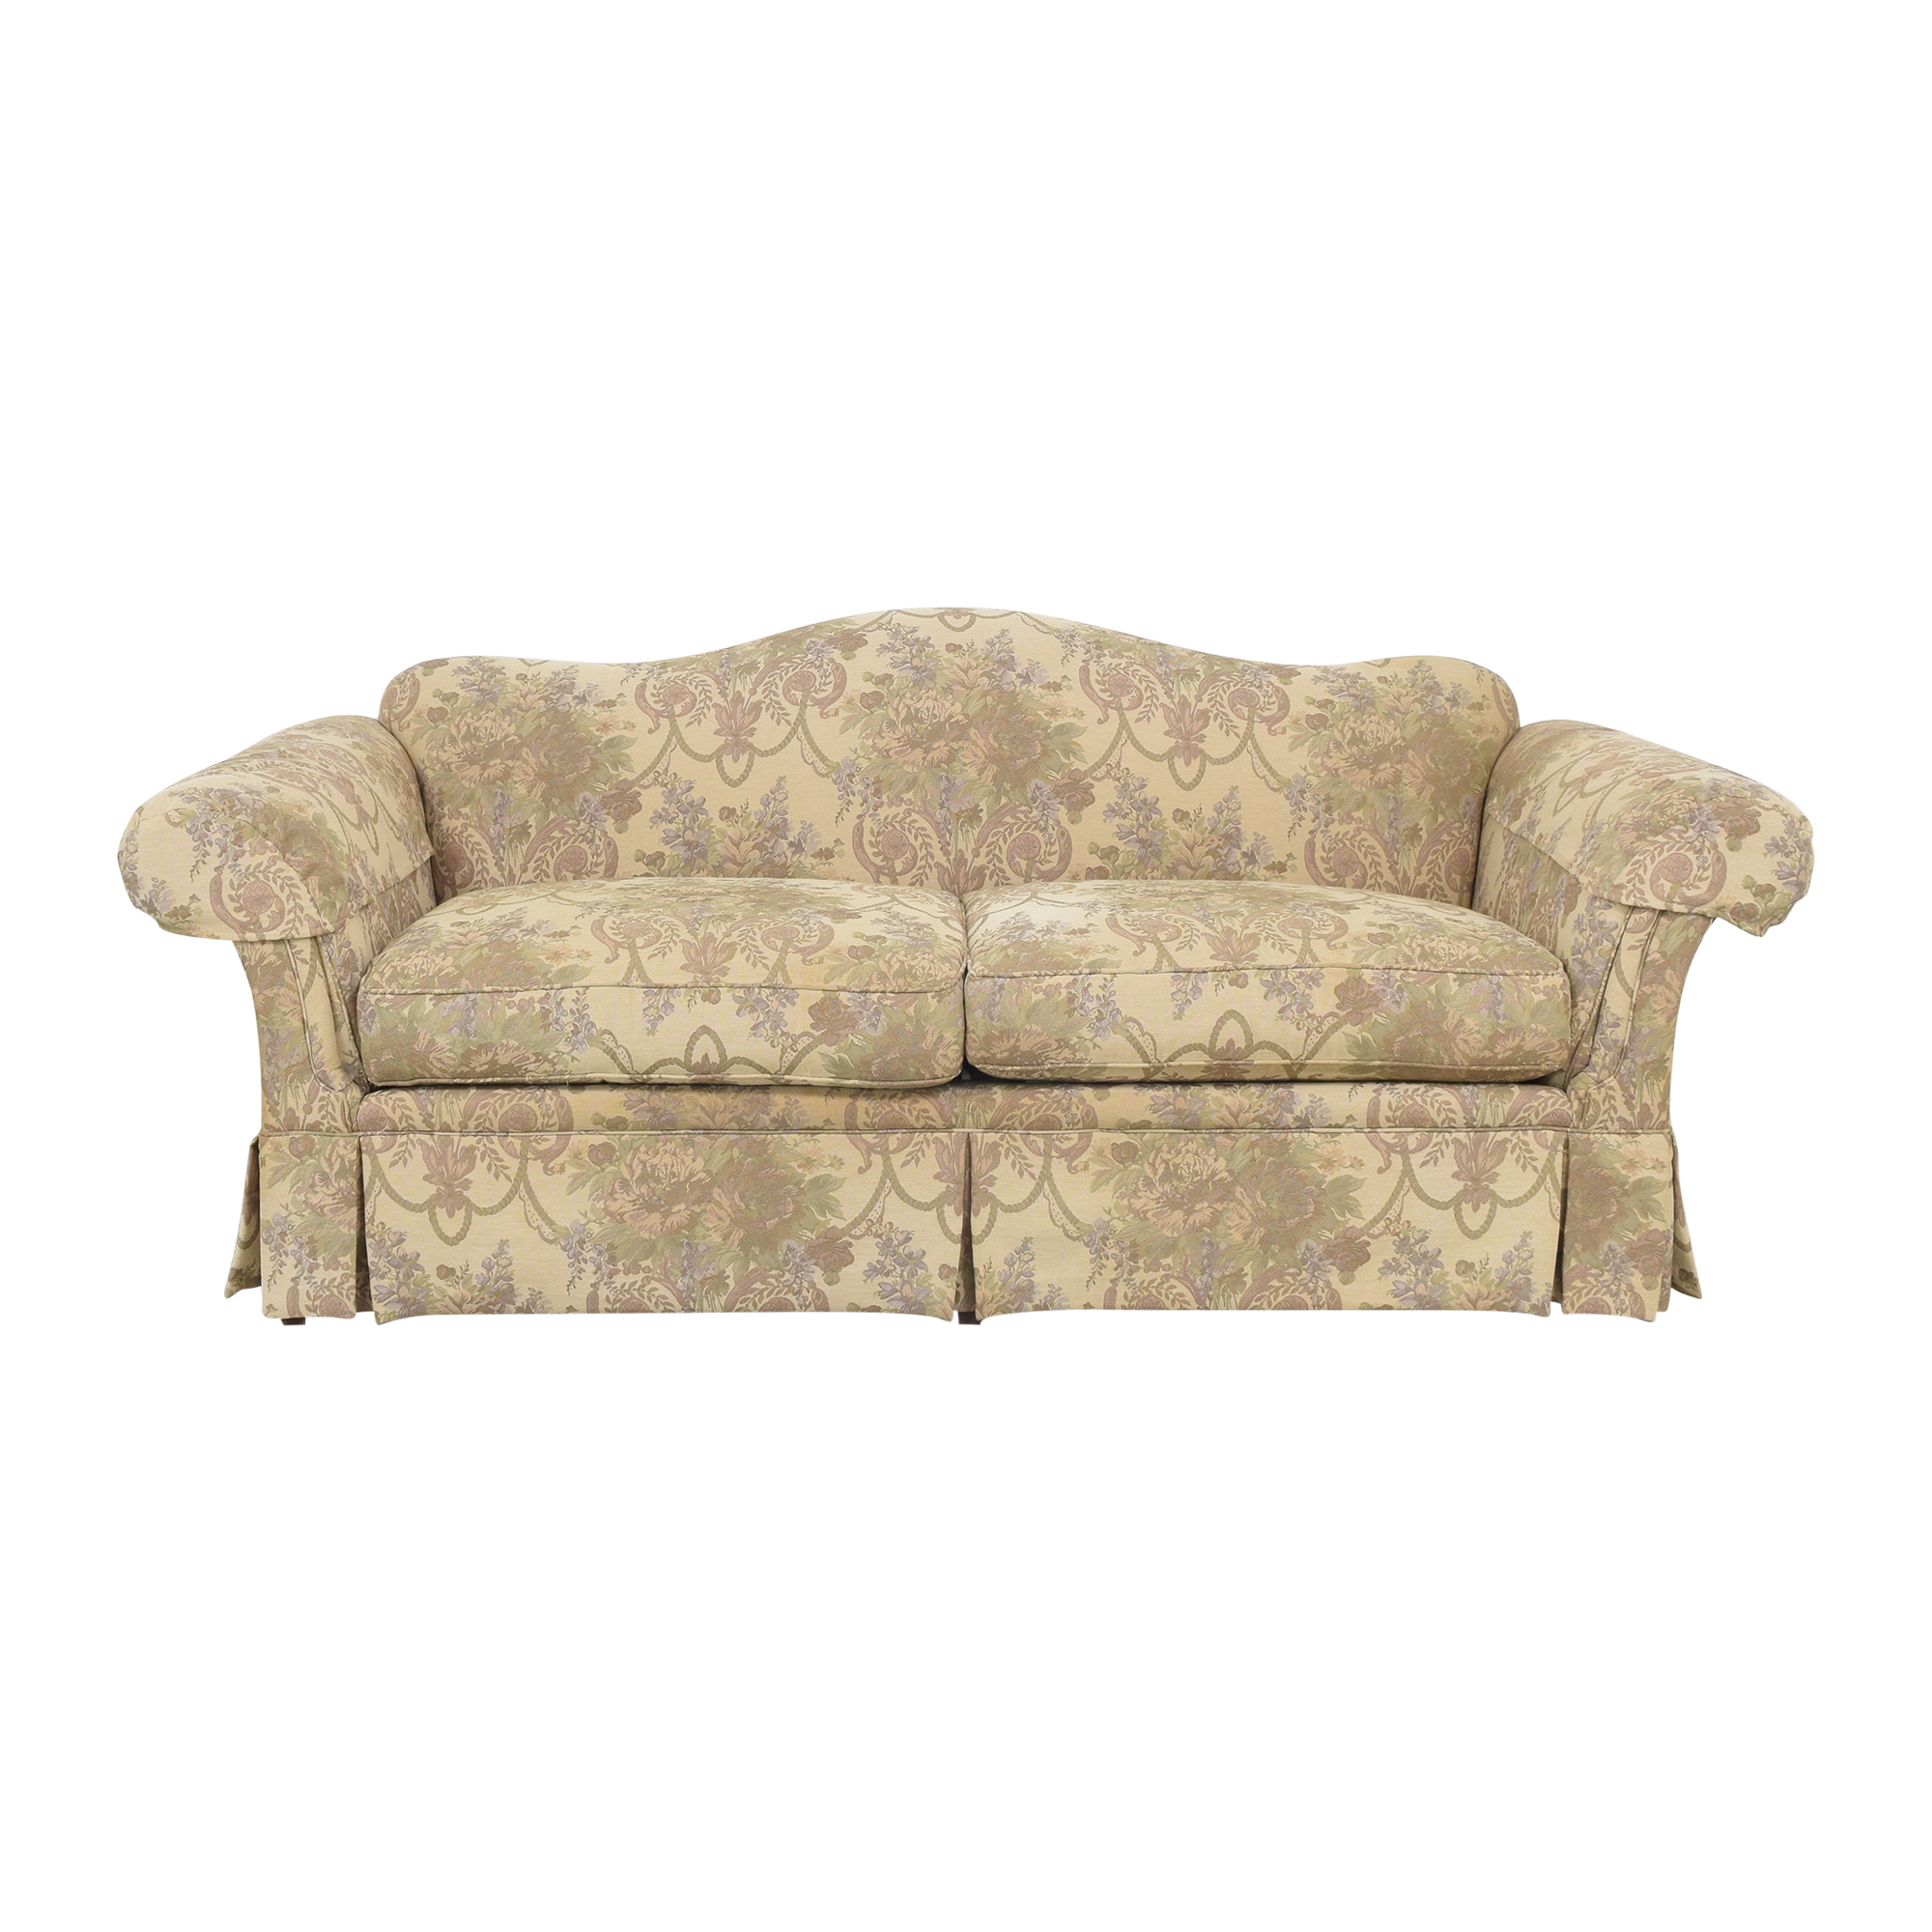 Highland House Furniture Highland House Camelback Sofa Sofas